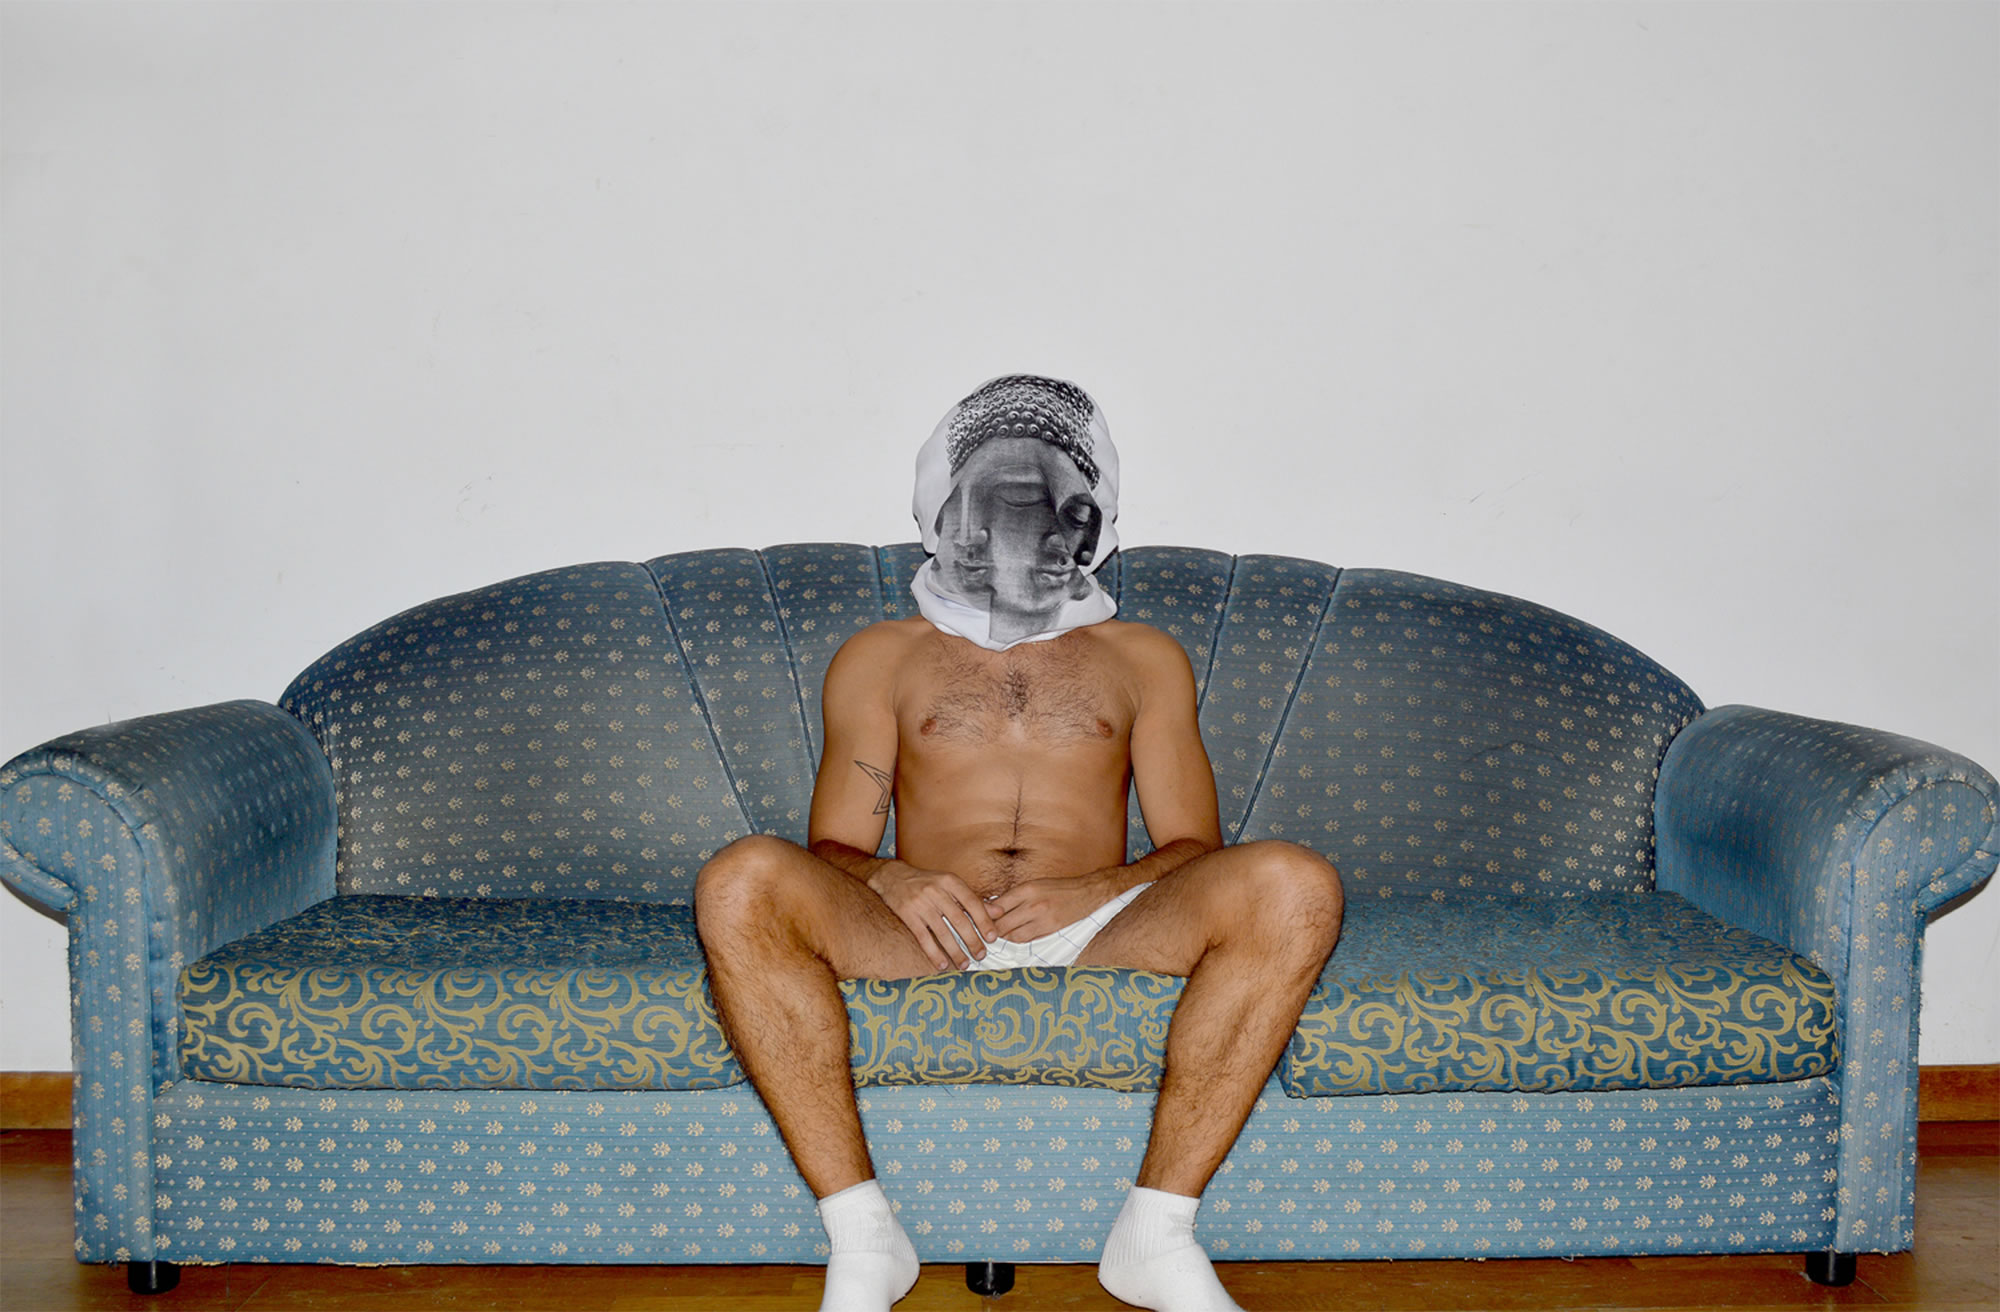 man with tshirt over head, sitting on couch